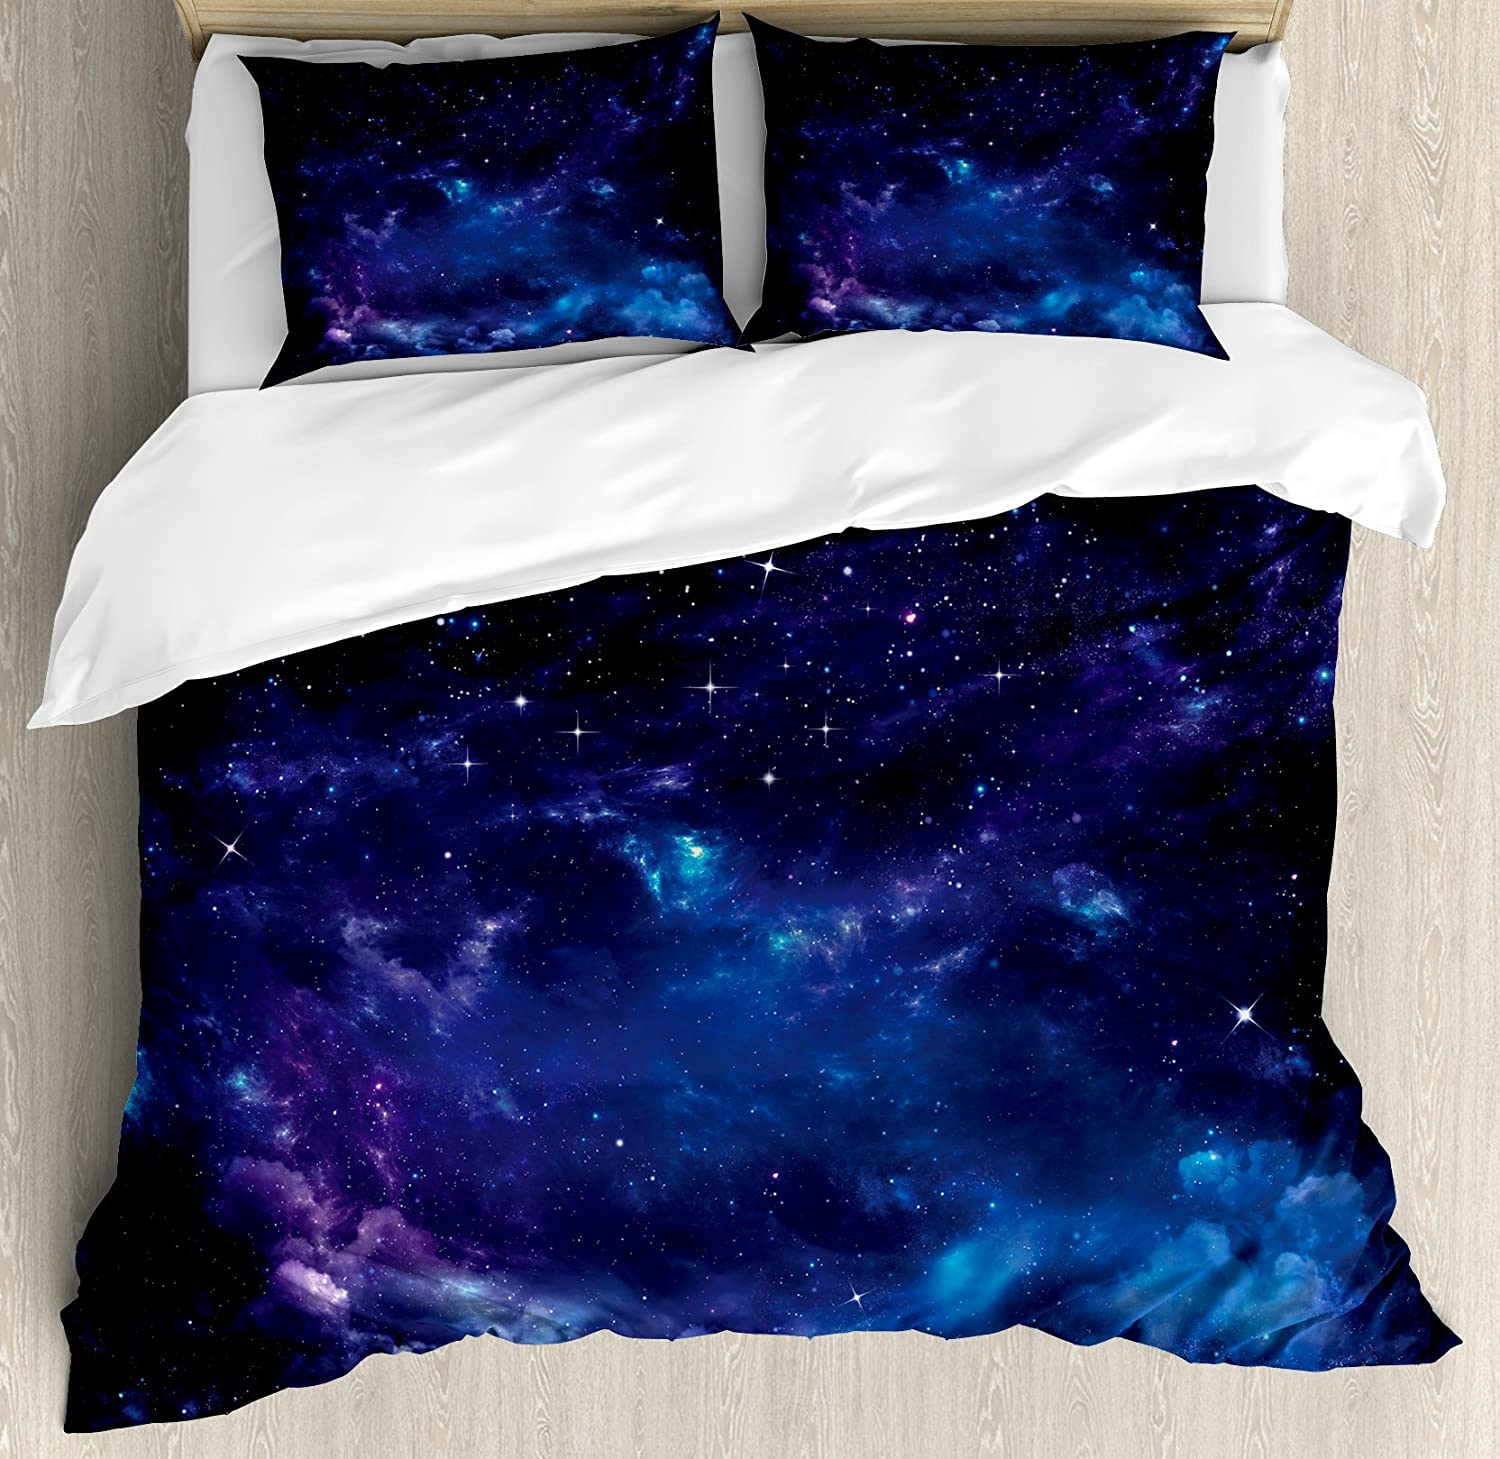 Ambesonne Sky Duvet Cover Set Queen Size, Space Illustration Night Time Universe Stars And Nebulas Distant Parts Of Galaxy, Decorative 3 Piece Bedding Set With 2 Pillow Shams, Purple Blue Black by Ambesonne